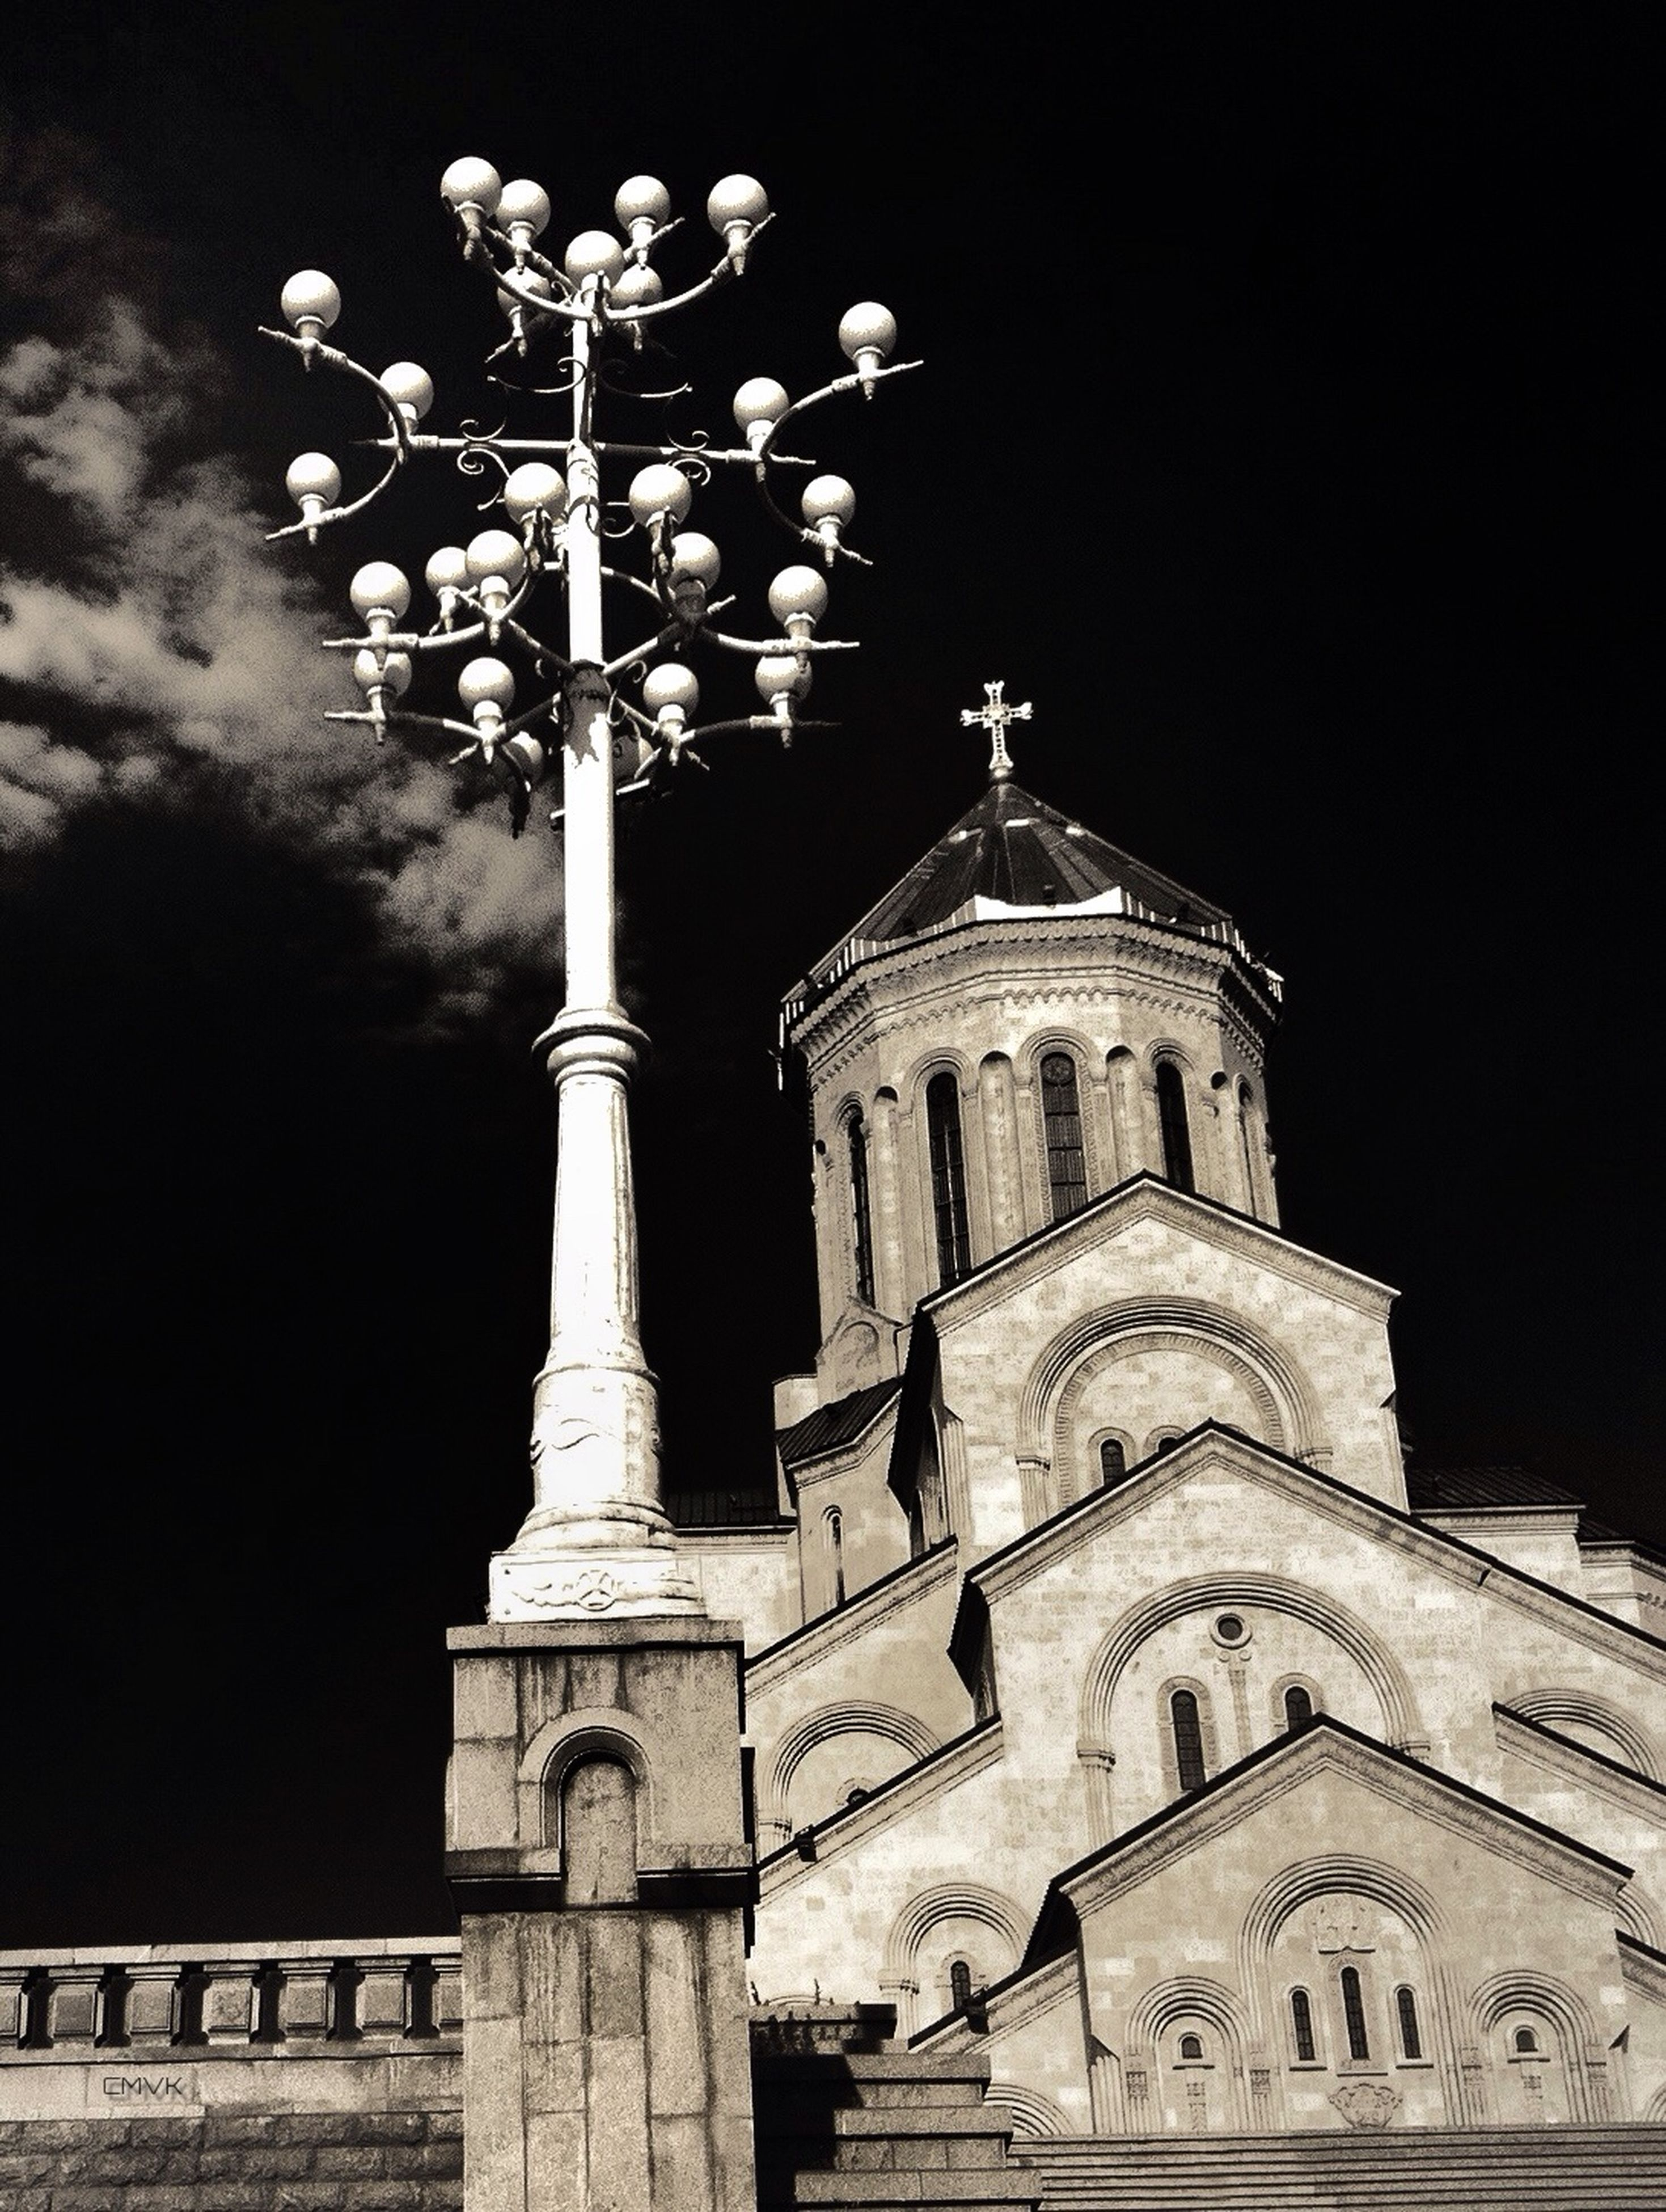 architecture, built structure, low angle view, building exterior, tree, night, religion, history, sky, place of worship, spirituality, clear sky, outdoors, old, travel destinations, street light, famous place, no people, architectural column